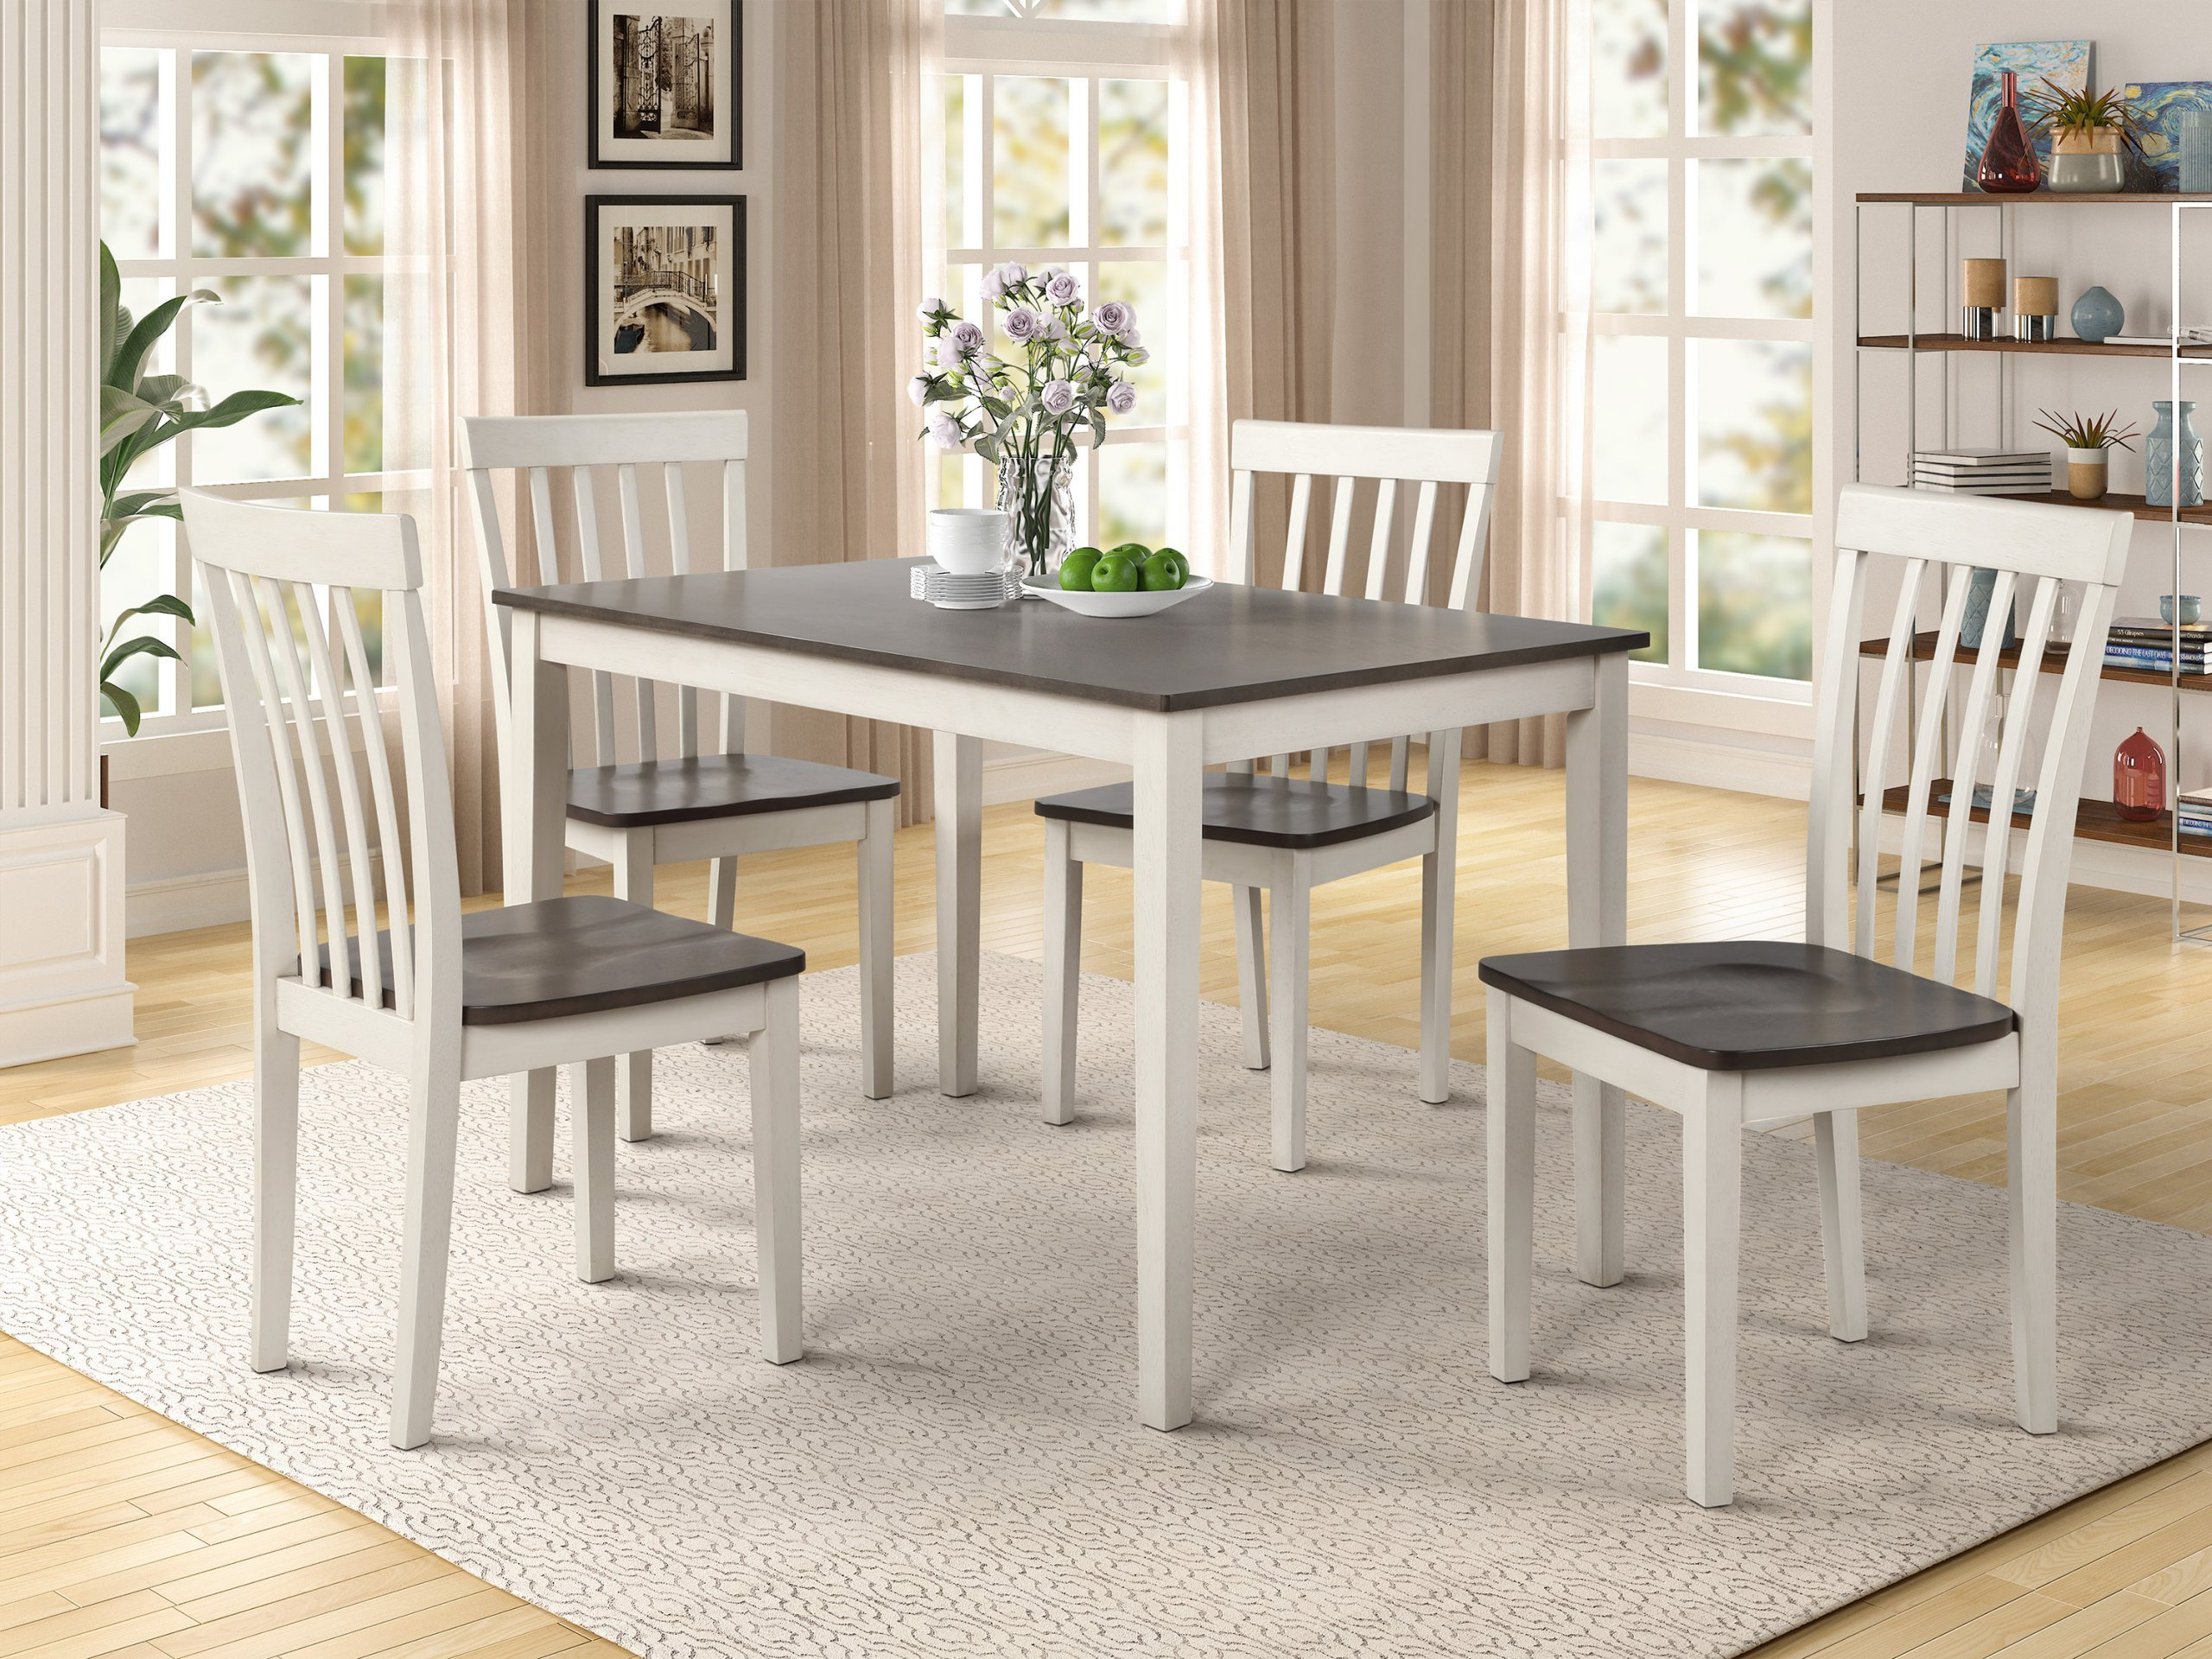 Wood Dinettes And Kitchen Sets (Gallery 30 of 30)